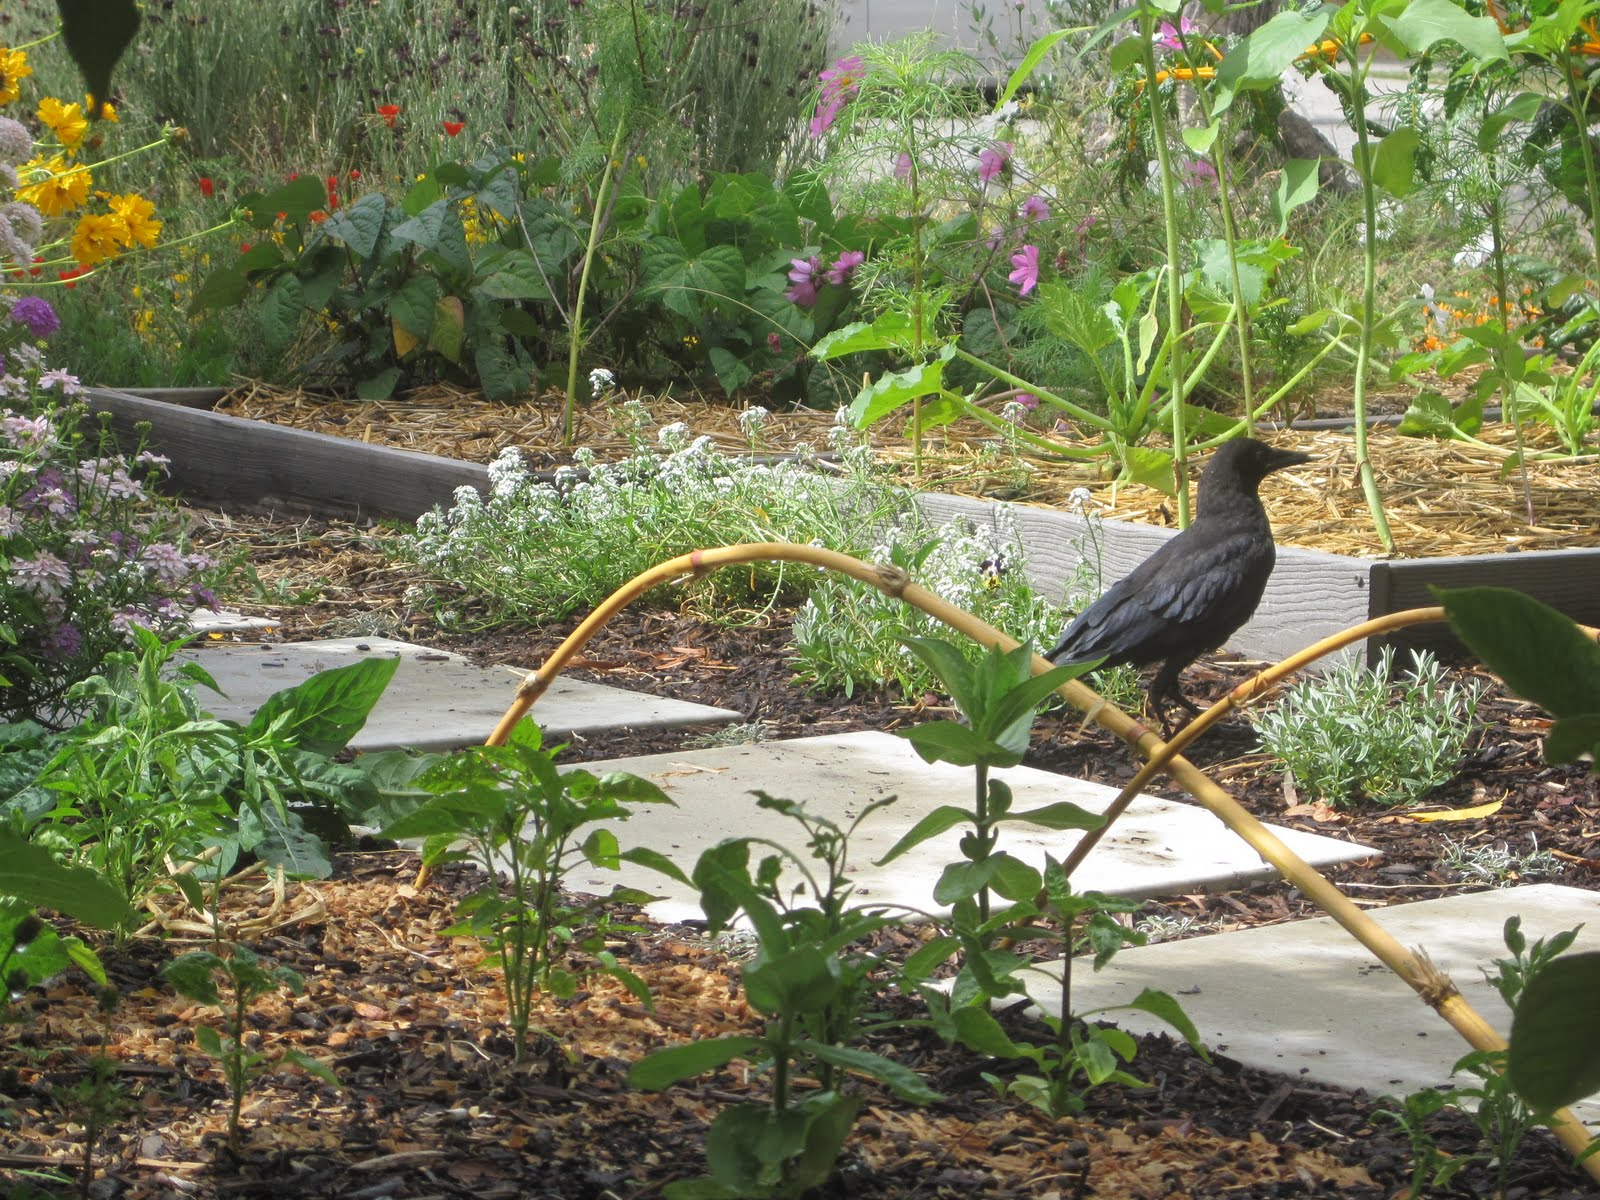 how to get rid of crow in garden